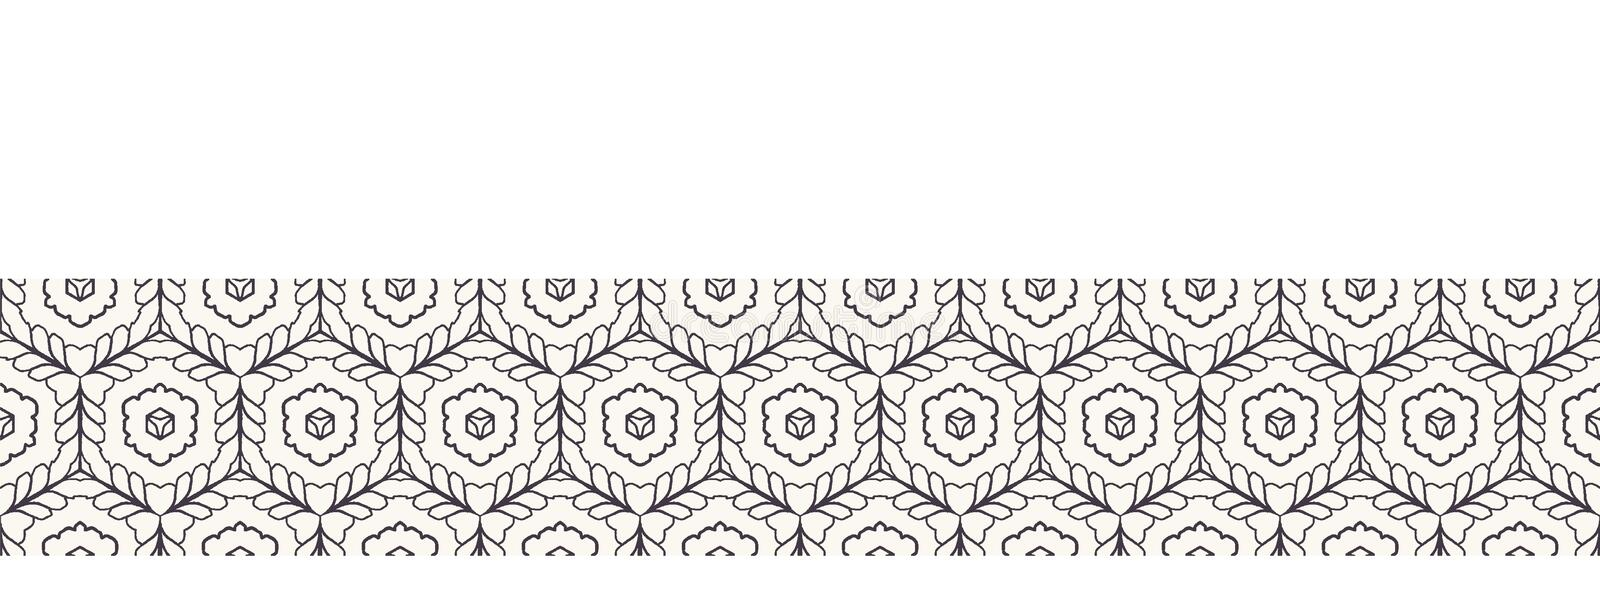 Seamless border pattern hand drawn honeycomb trellis background. Geometric monochrome cell stripe. Vector ribbon edging trim. Seamless border pattern honeycomb royalty free illustration